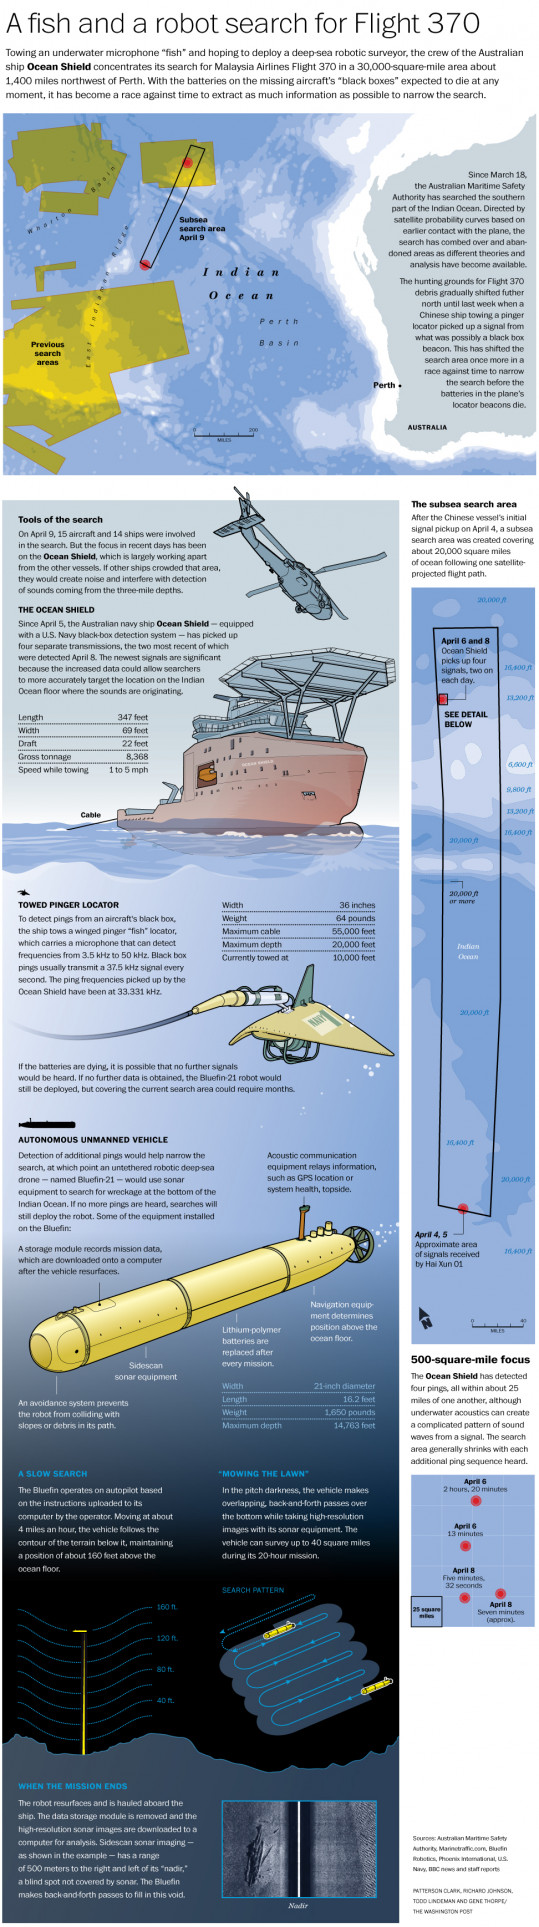 A Fish and a Robot search for Flight 370